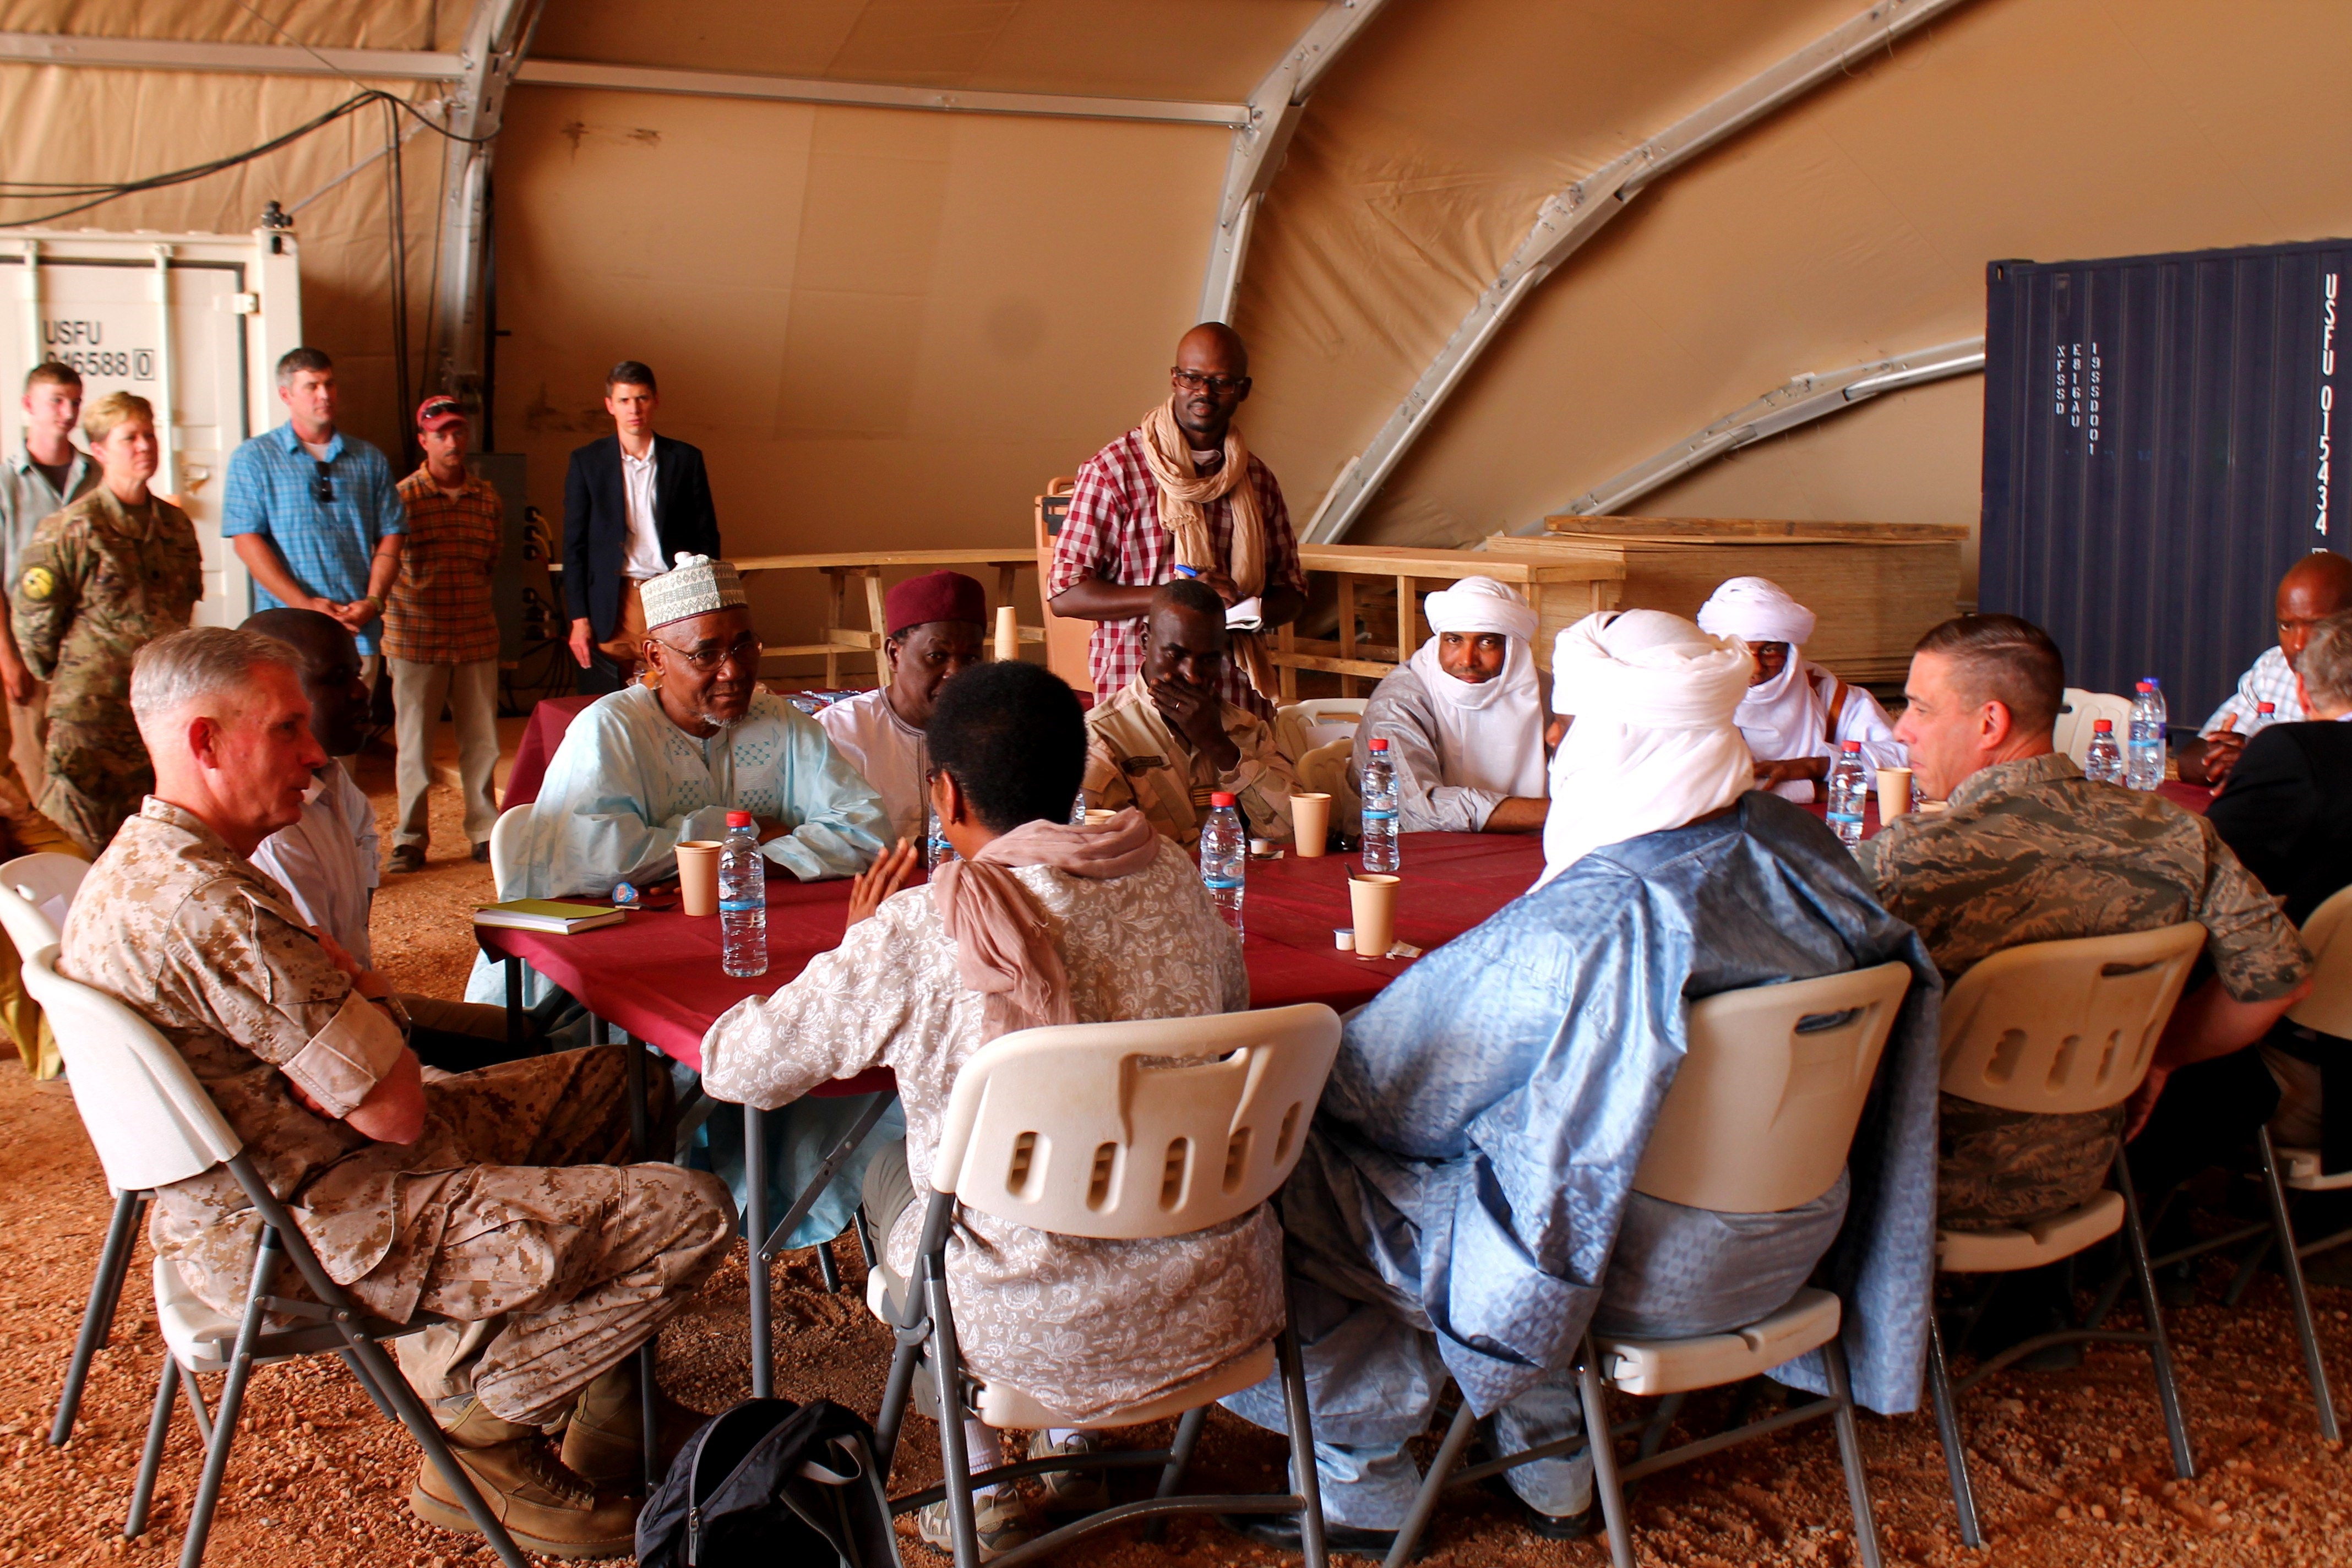 Gen. Thomas Waldhauser, Commander, U.S. Africa Command, and U.S. Ambassador to Niger Eunice Reddick meet with several Nigerien civilian leaders outside of Agadez, Niger on Nov. 1, 2016 to discuss improvements to Niger's Air Base 201. (Photo by Samantha Reho, U.S. Africa Command Public Affairs/Released)